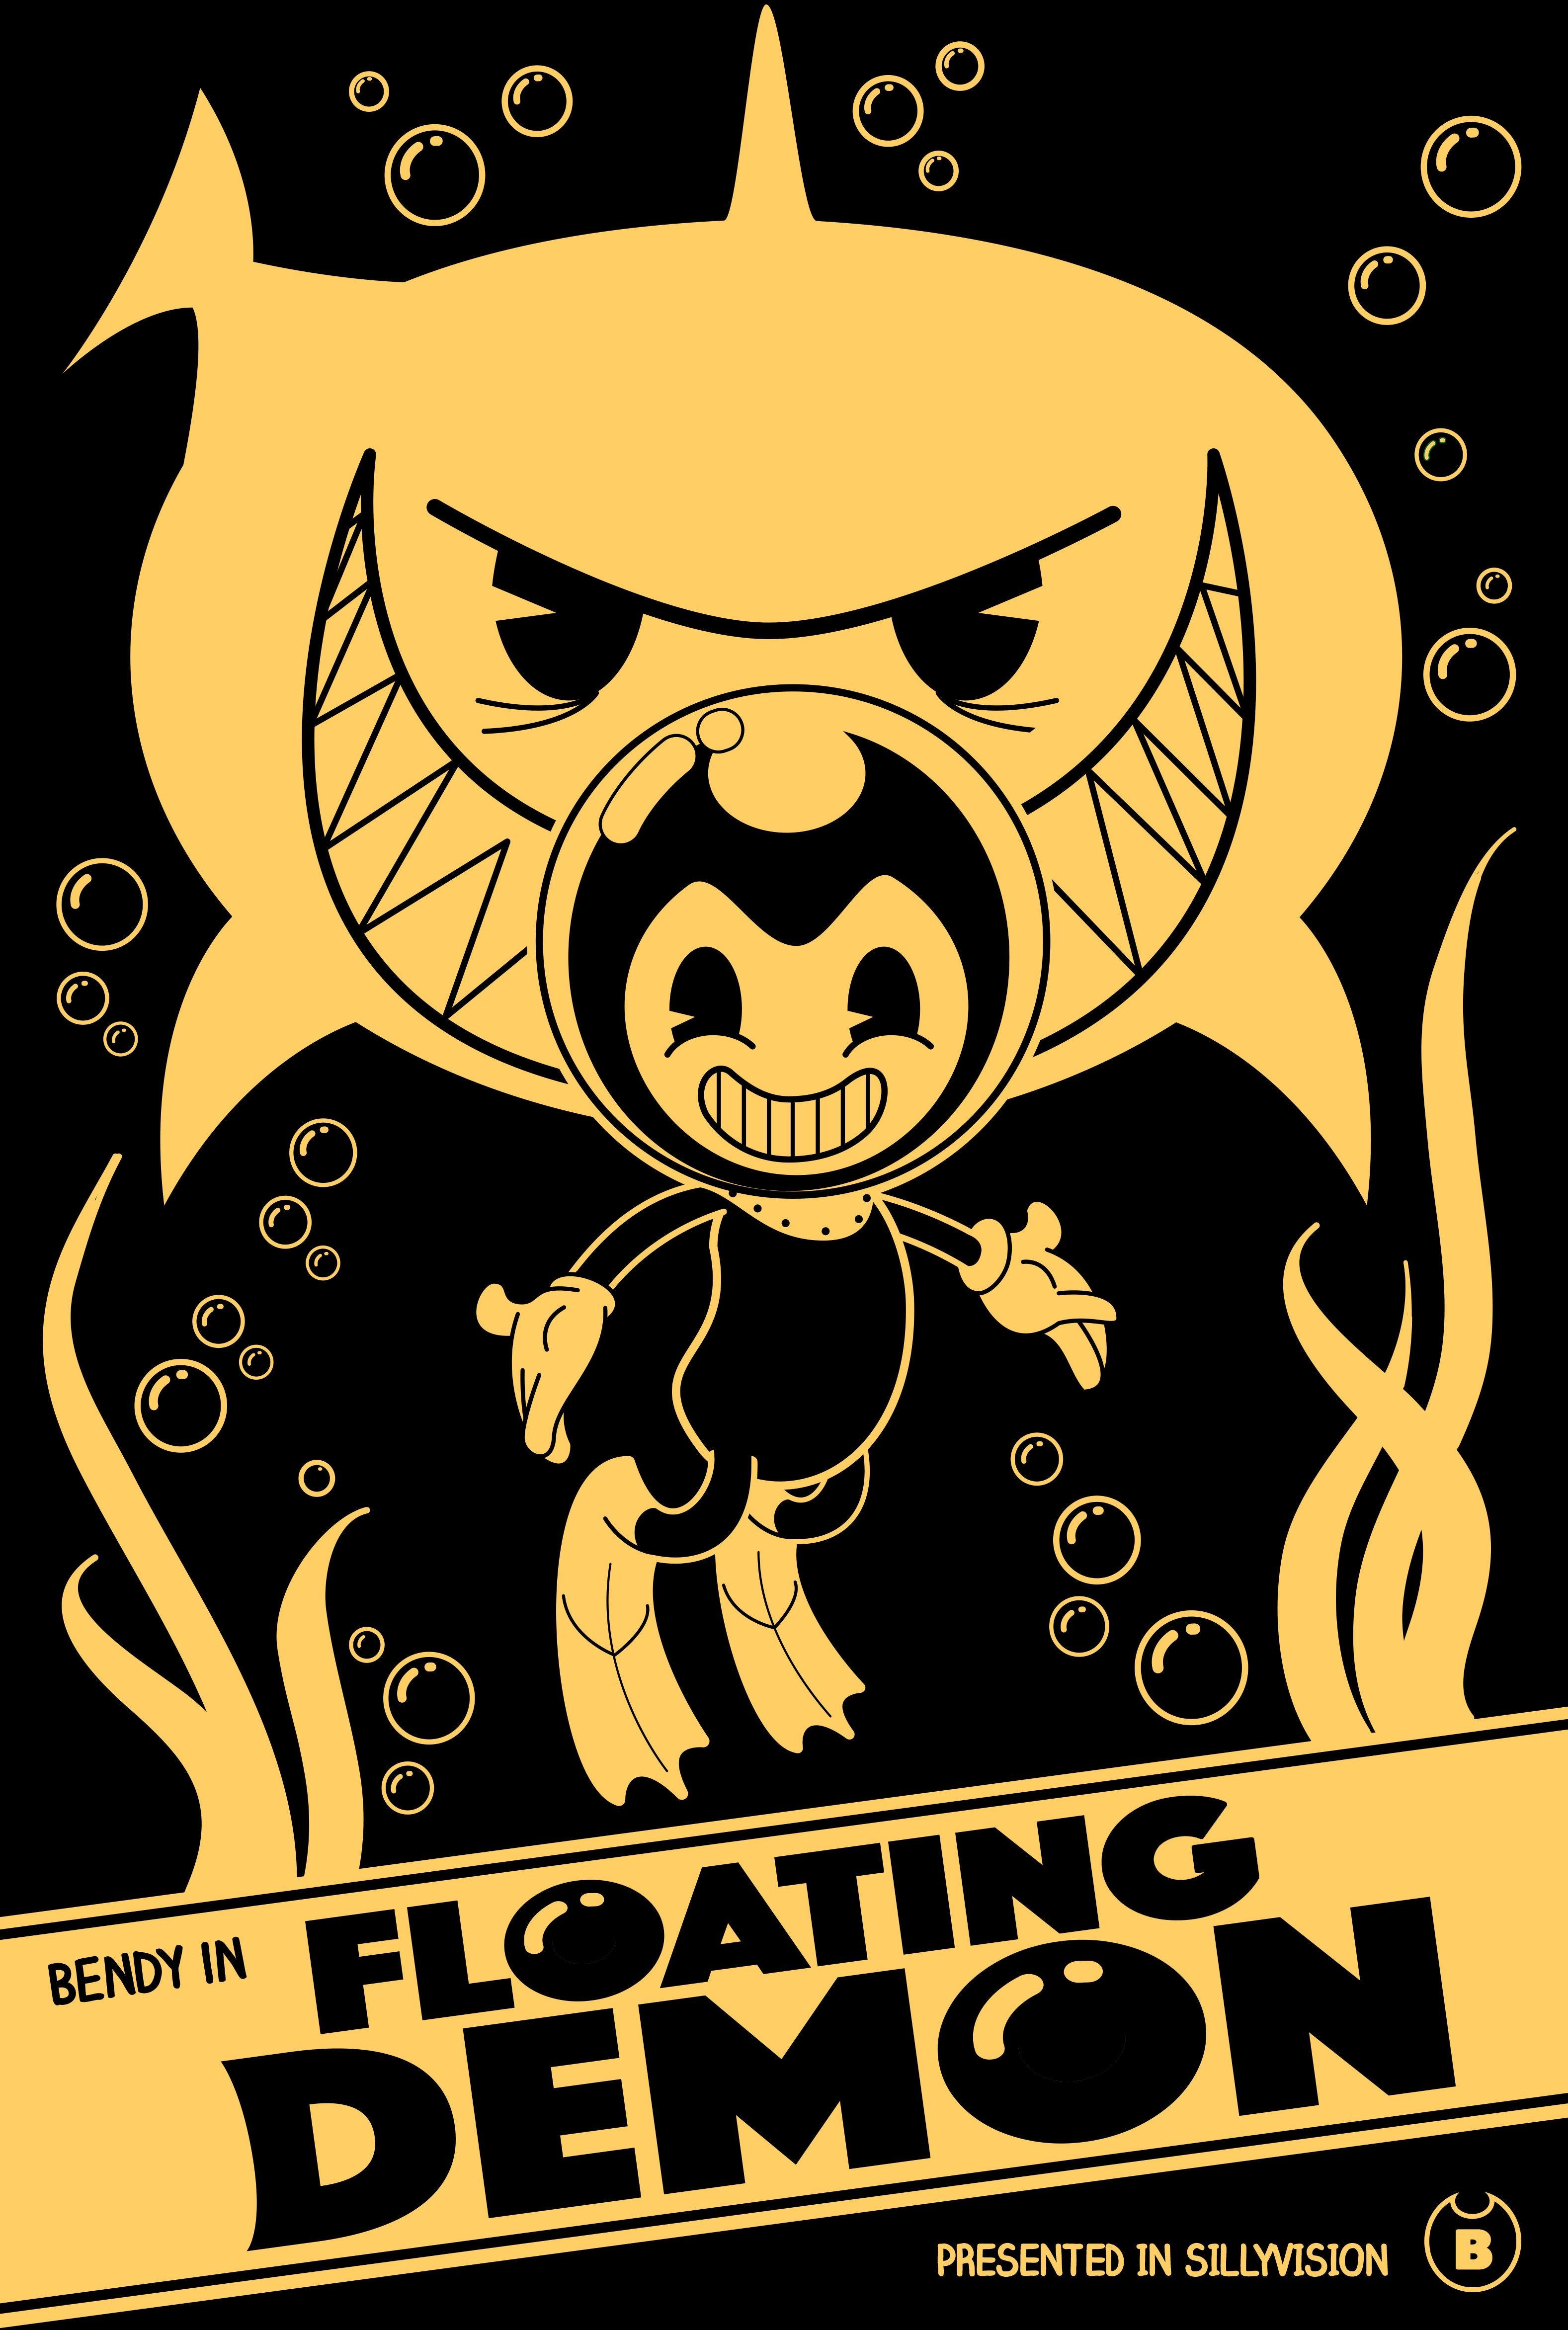 BENDY AND THE INK MACHINE WINNING POSTER